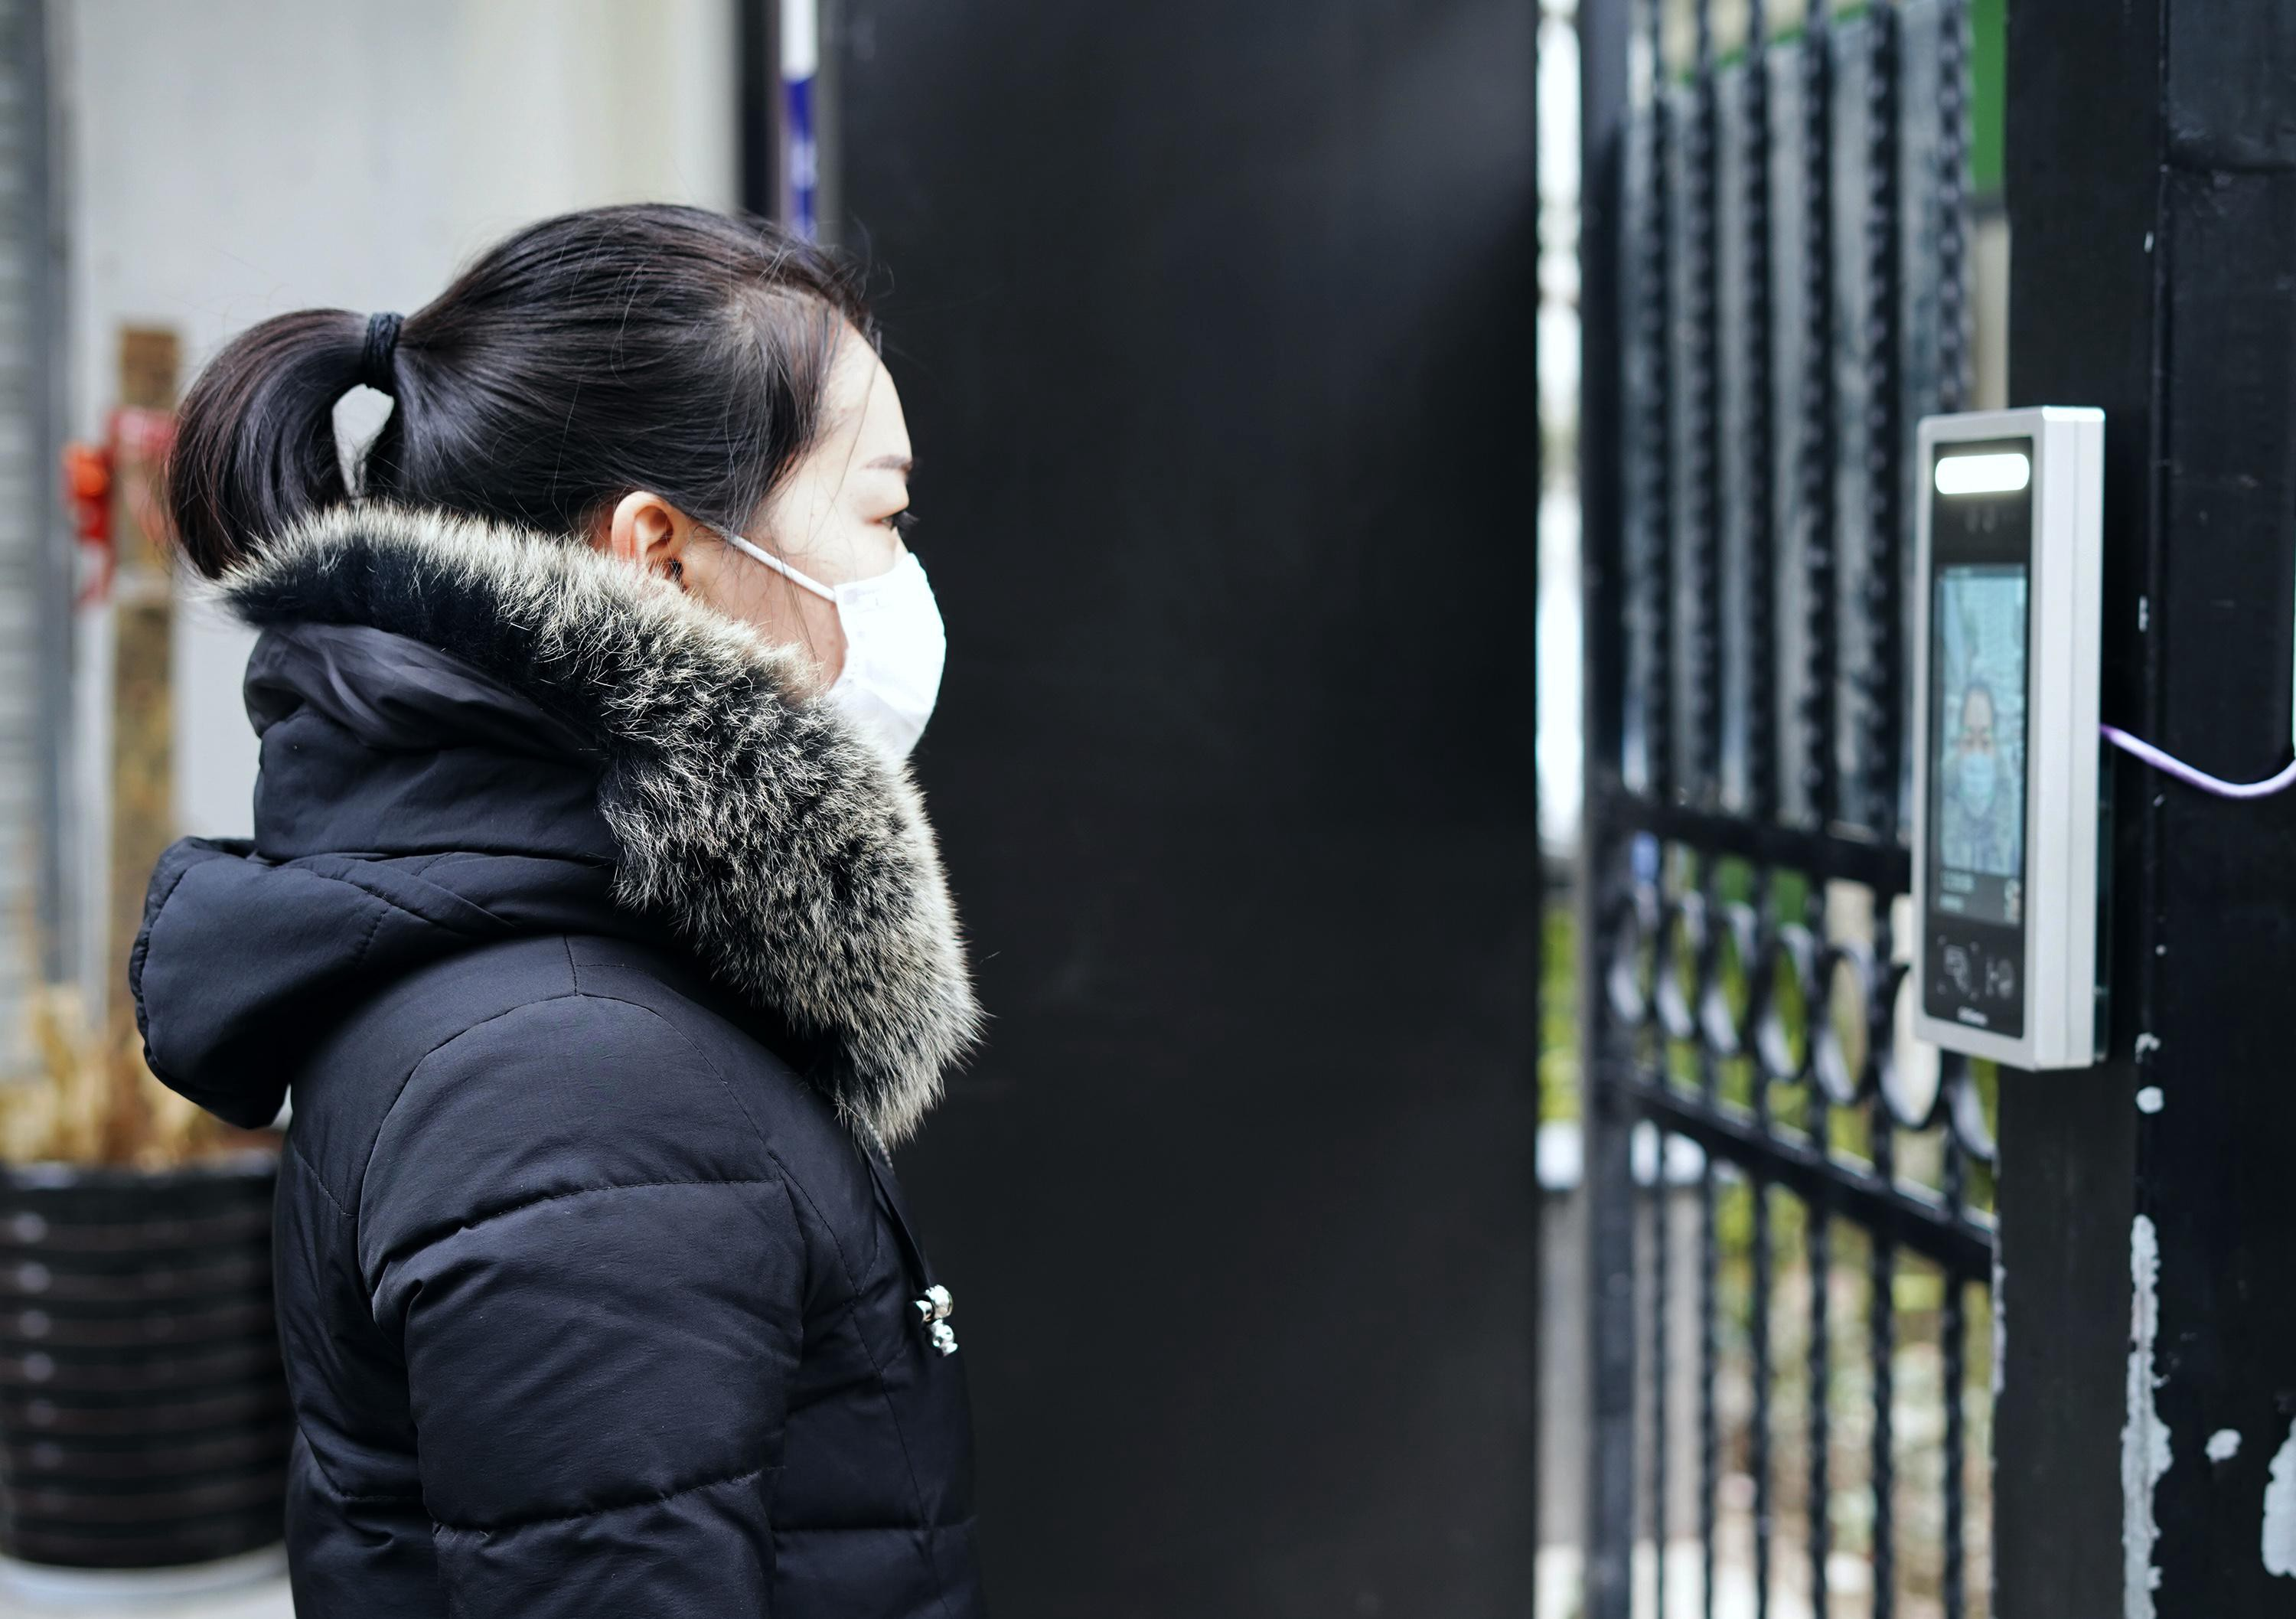 A woman with a face mask uses a facial recognition system to enter a residence.